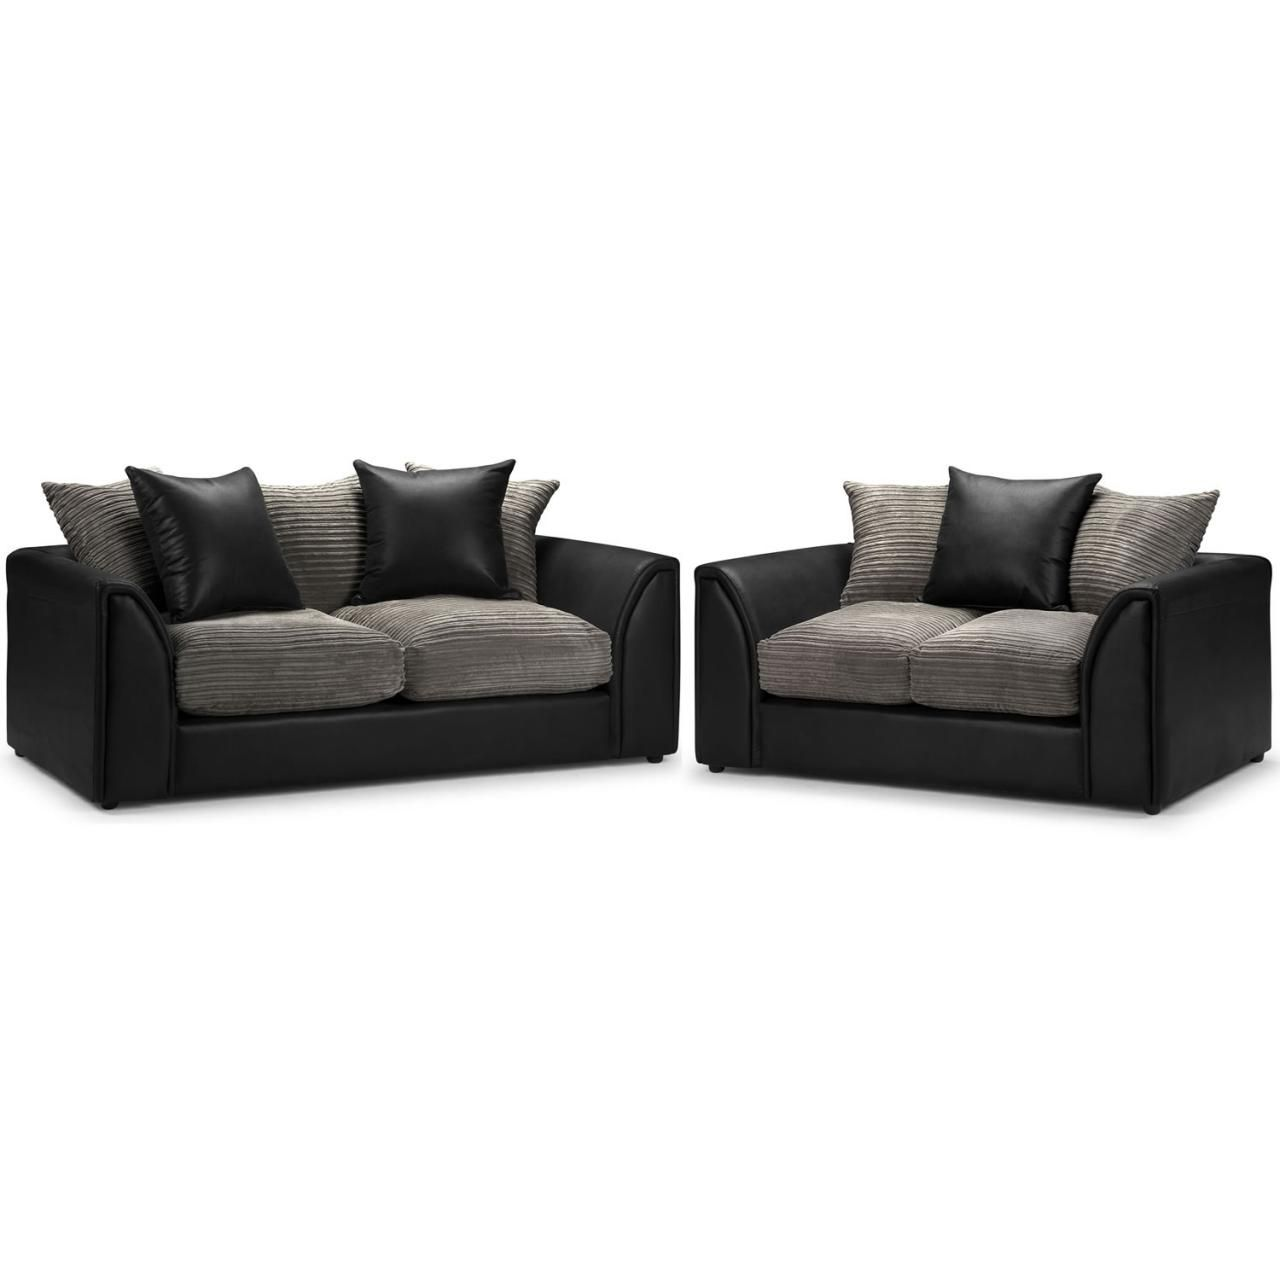 Corduroy 3 Seater Sofa This Byron Three Seater And Two Seater Sofa Set Is Also In The